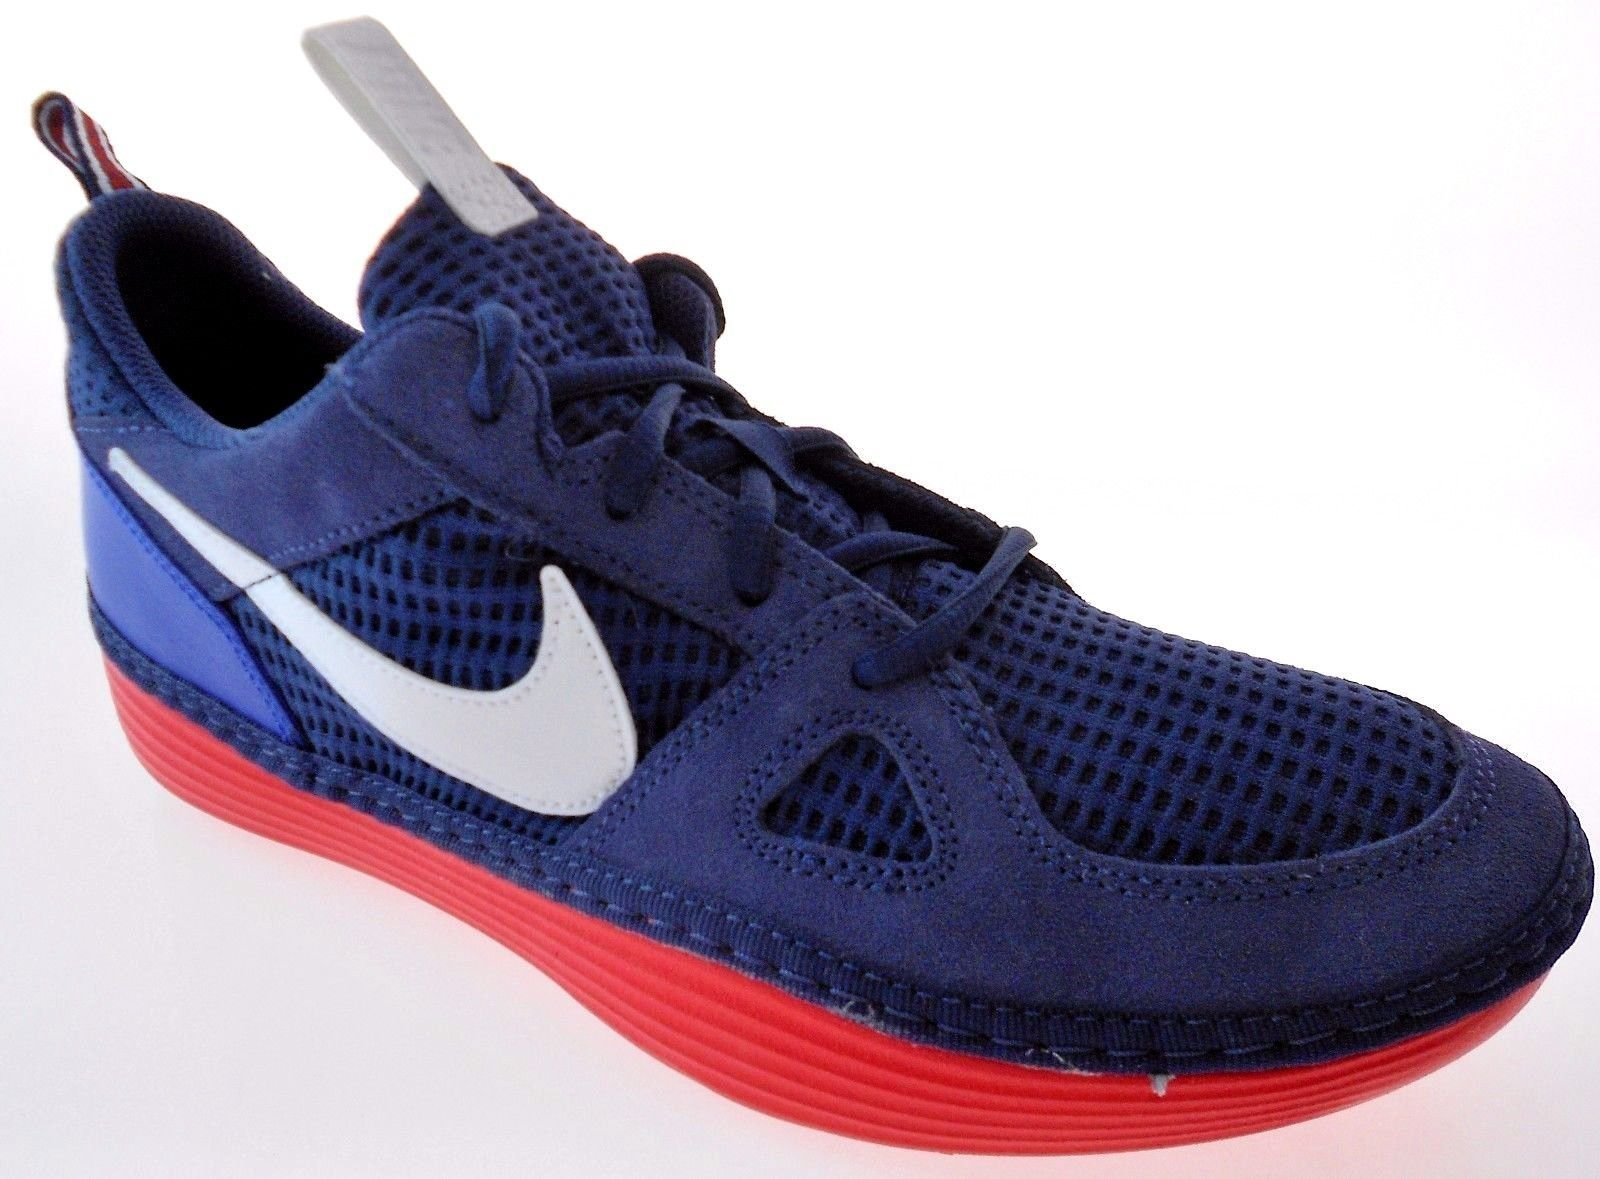 Primary image for NIKE SOLARSOFT RUN MEN'S NAVY/ROYAL BLUE SHOES, #631409-414